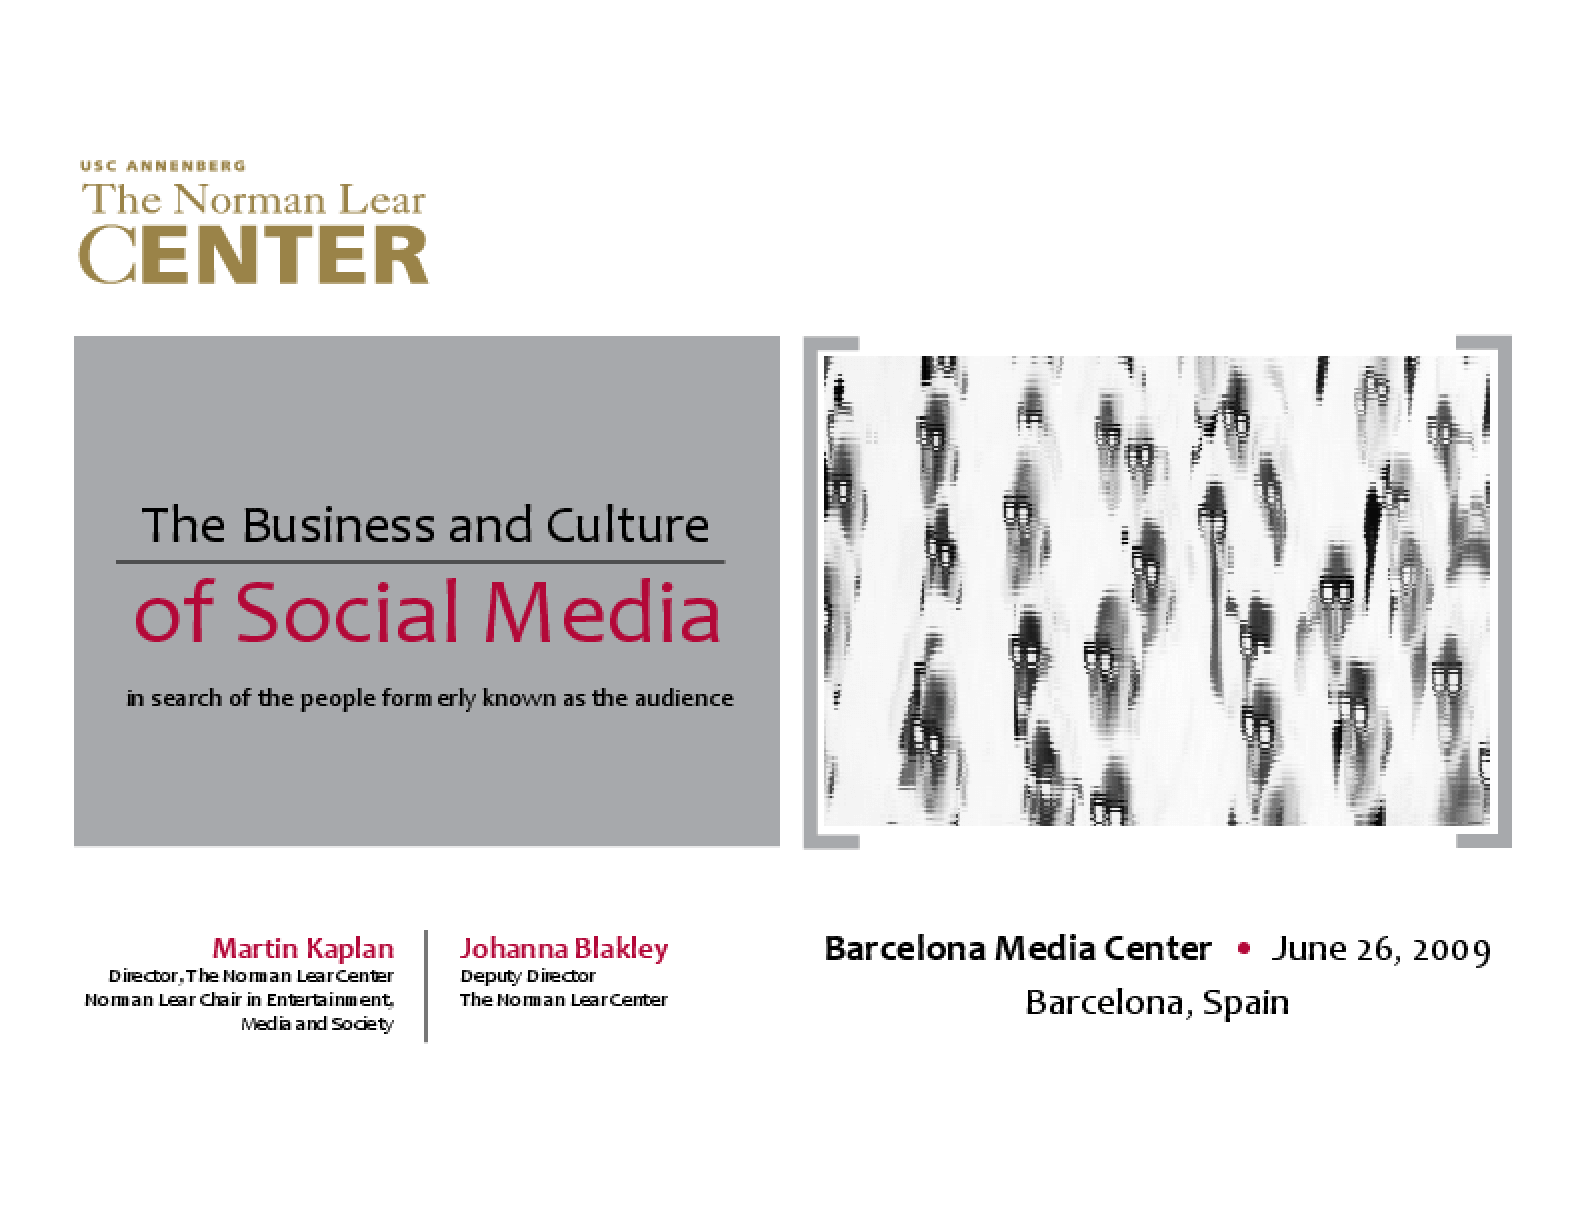 The Business and Culture of Social Media: In Search of the People Formerly Known As the Audience